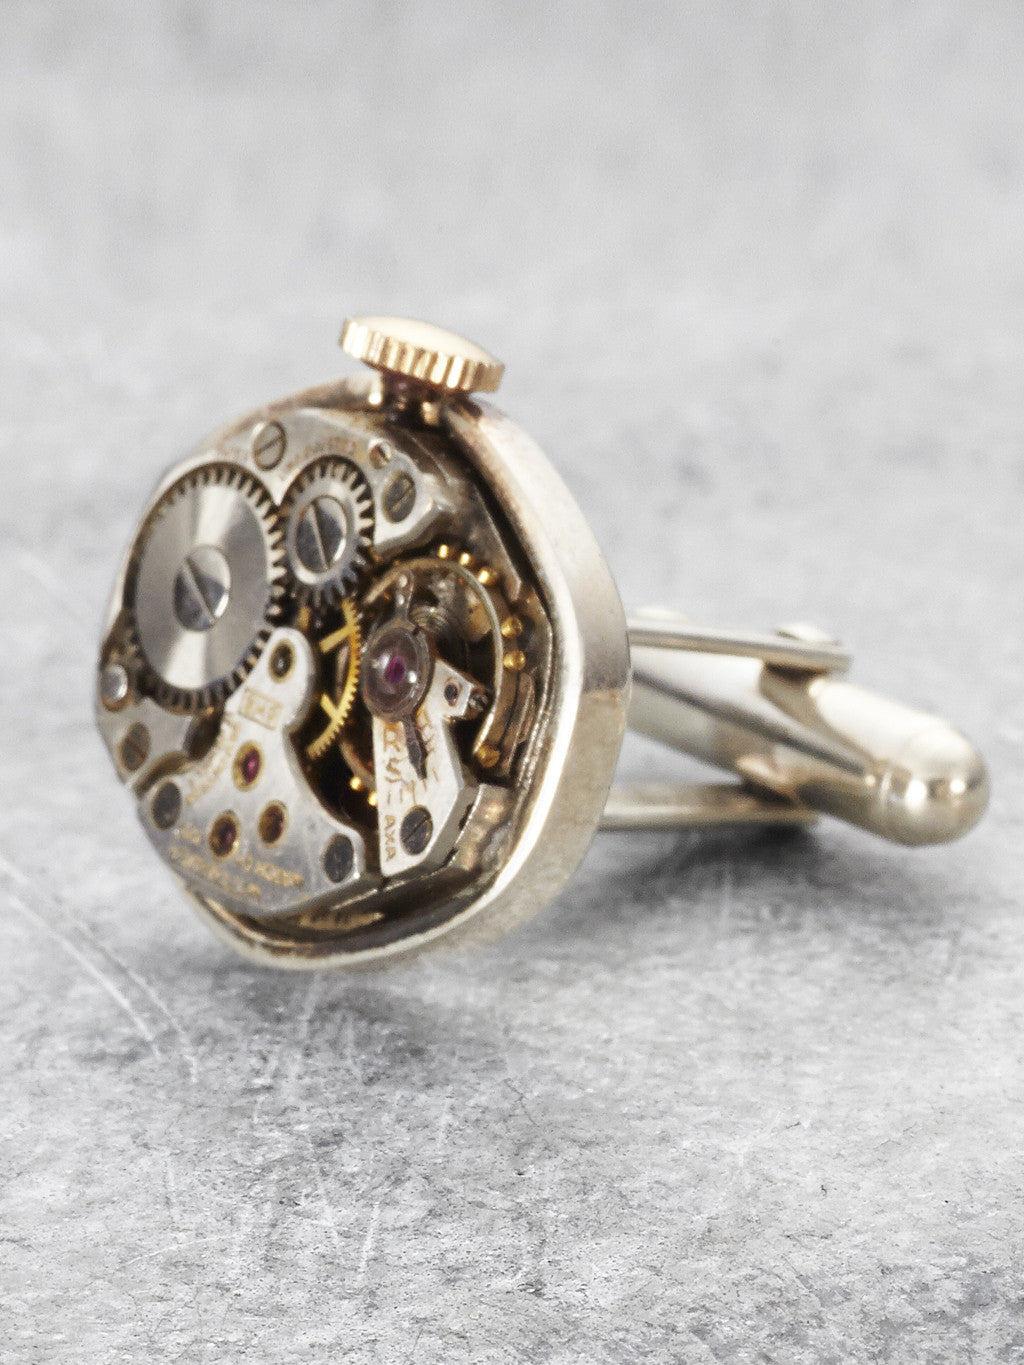 Steampunk Watchpart Cufflinks detail